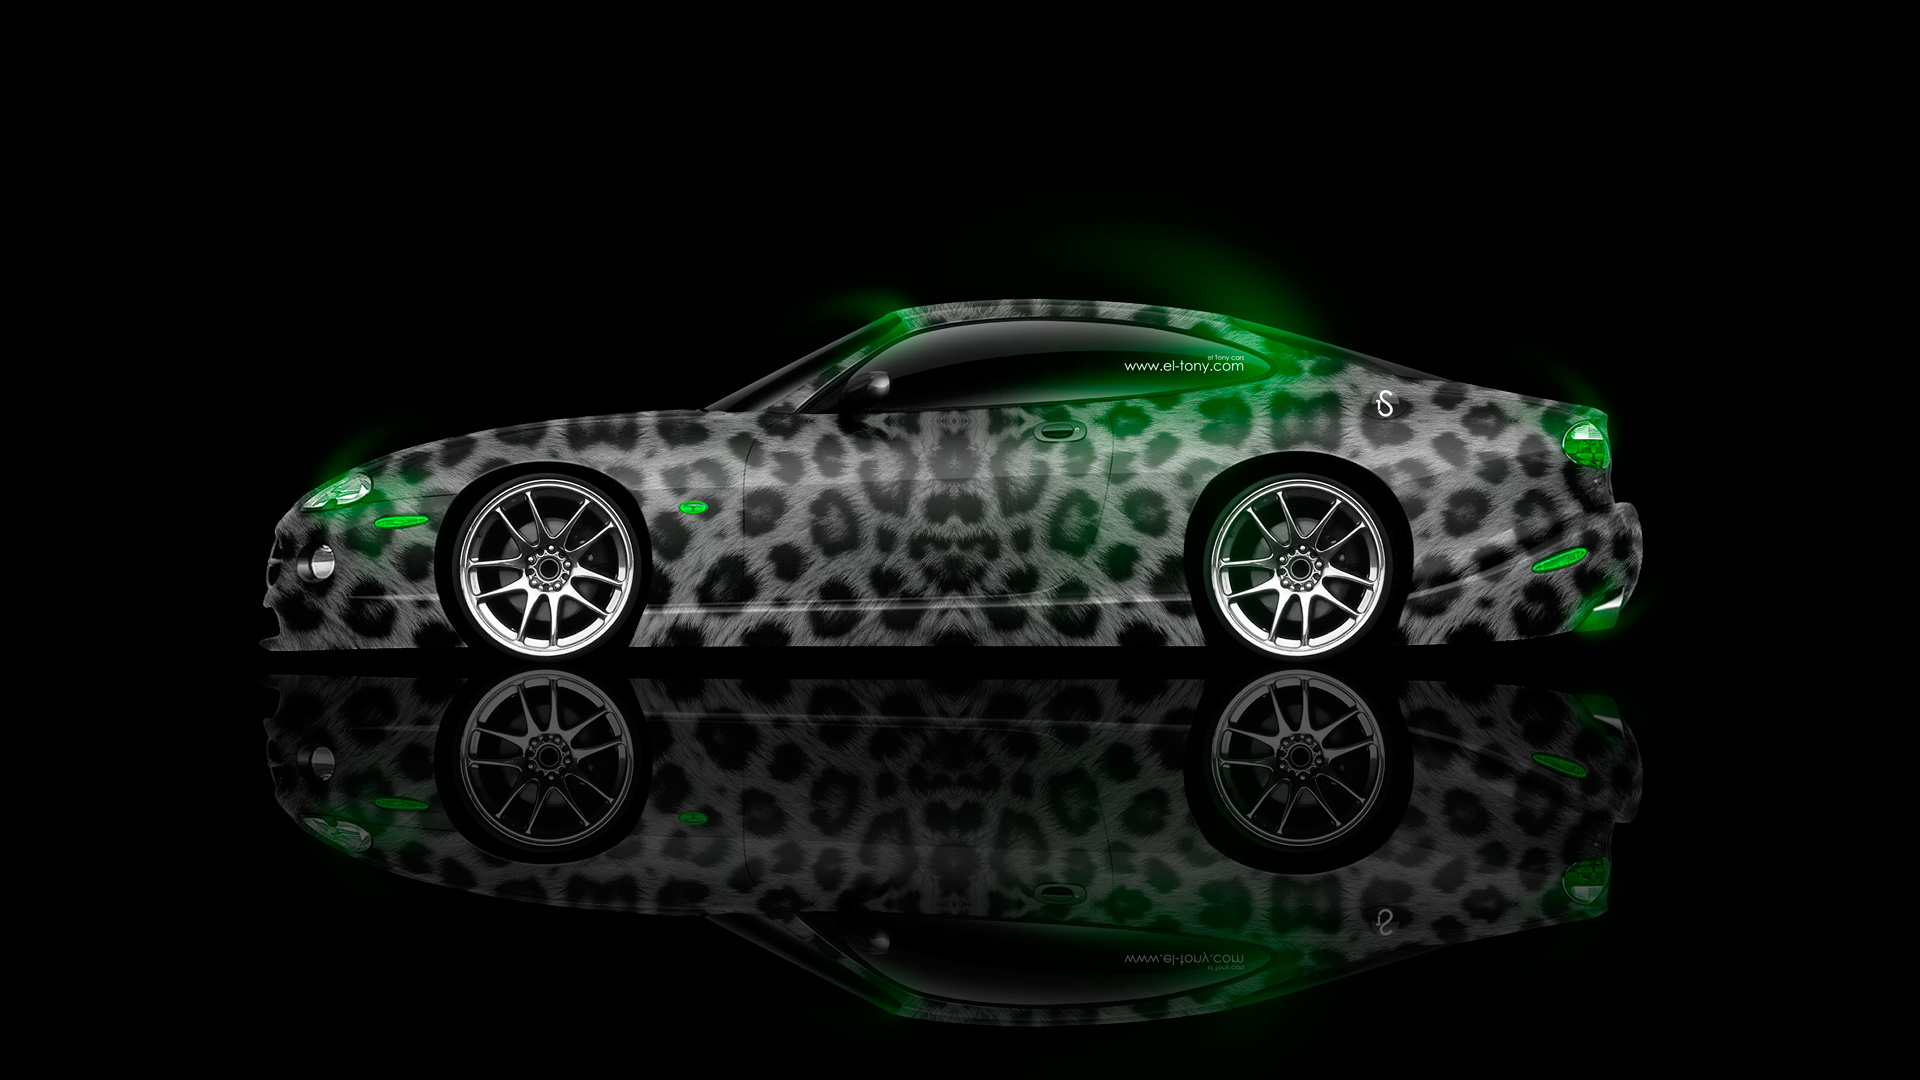 Charmant ... Jaguar XK8 Coupe Side Animal Aerography Car 2014